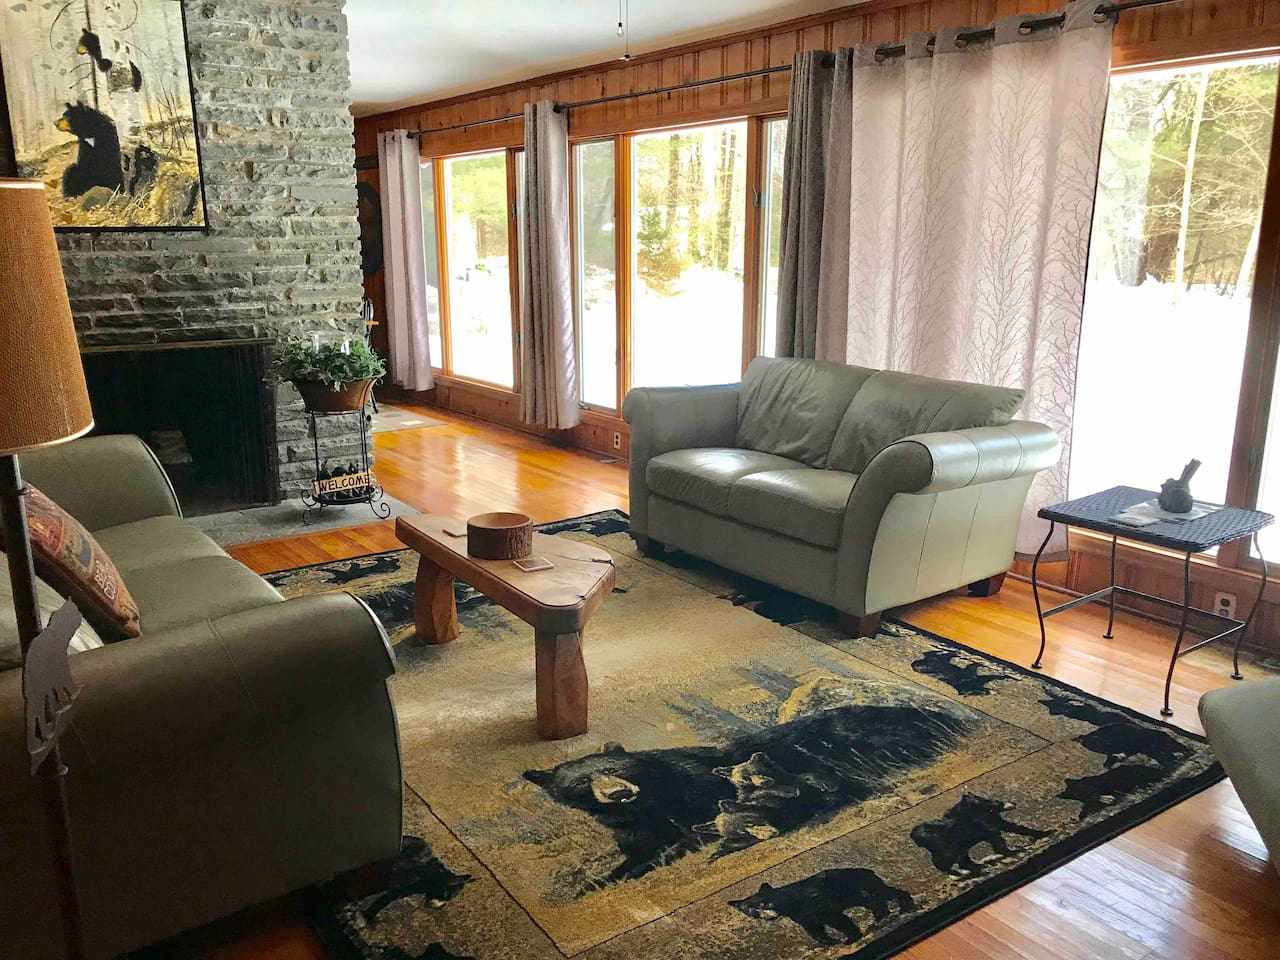 The living room is bright, spacious and has plenty of seating. The full wall of ceiling to floor windows overlooks the wooded yard, where you will enjoy the sights and sounds of nature.